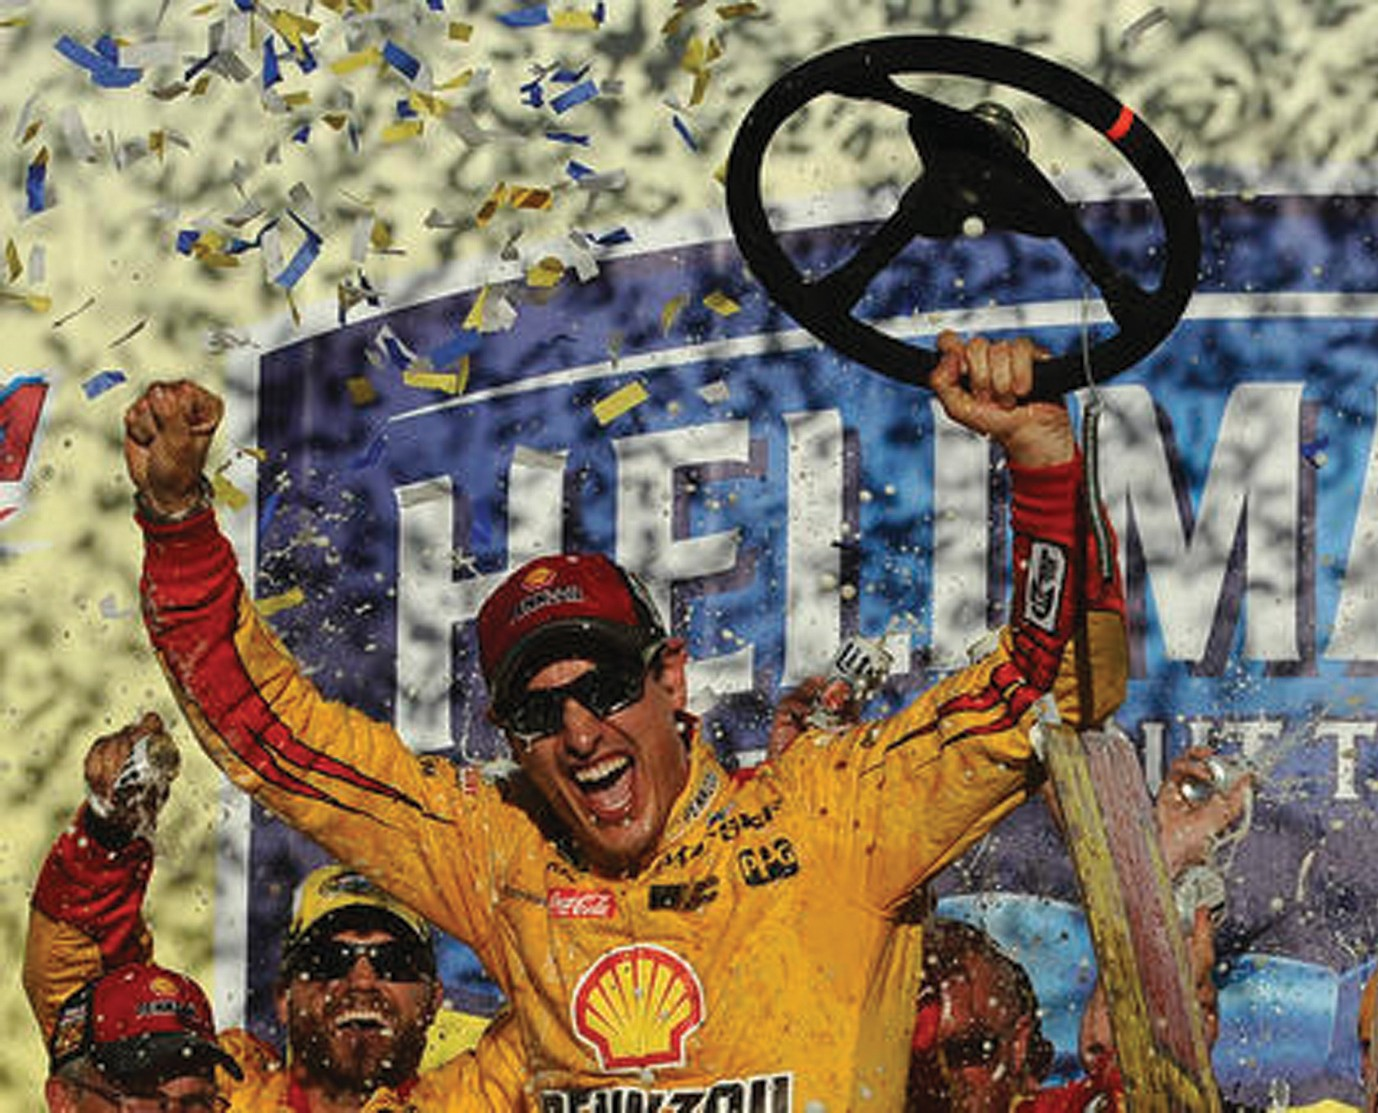 Joey Logano celebrates after winning the NASCAR Sprint Cup Series auto race auto race at Talladega Superspeedway, Sunday, Oct. 23, 2016, in Talladega, Ala.